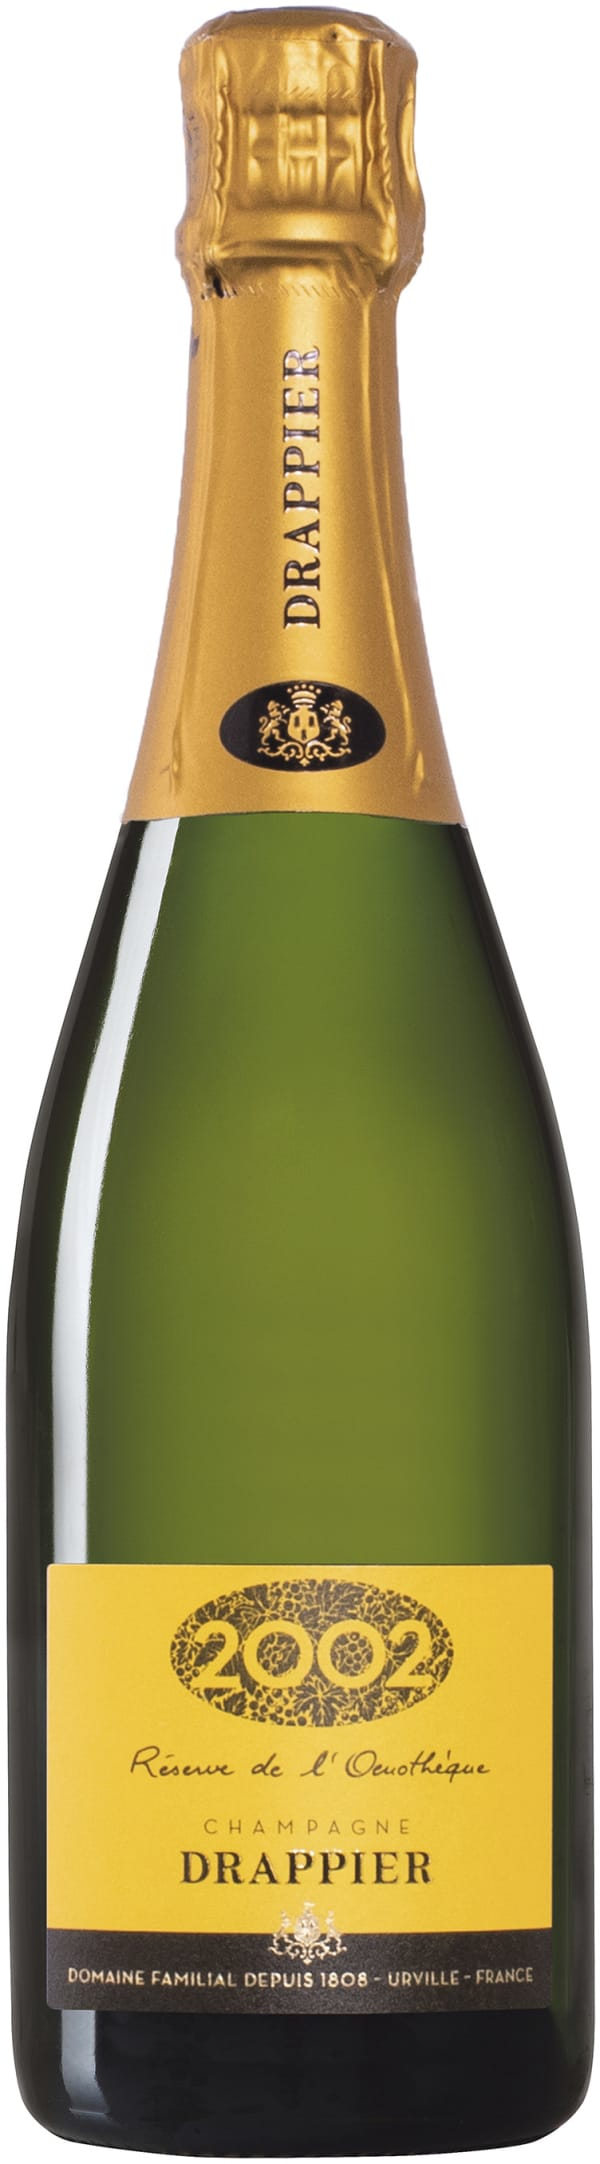 Drappier Carte d'Or Champagne Brut 2002